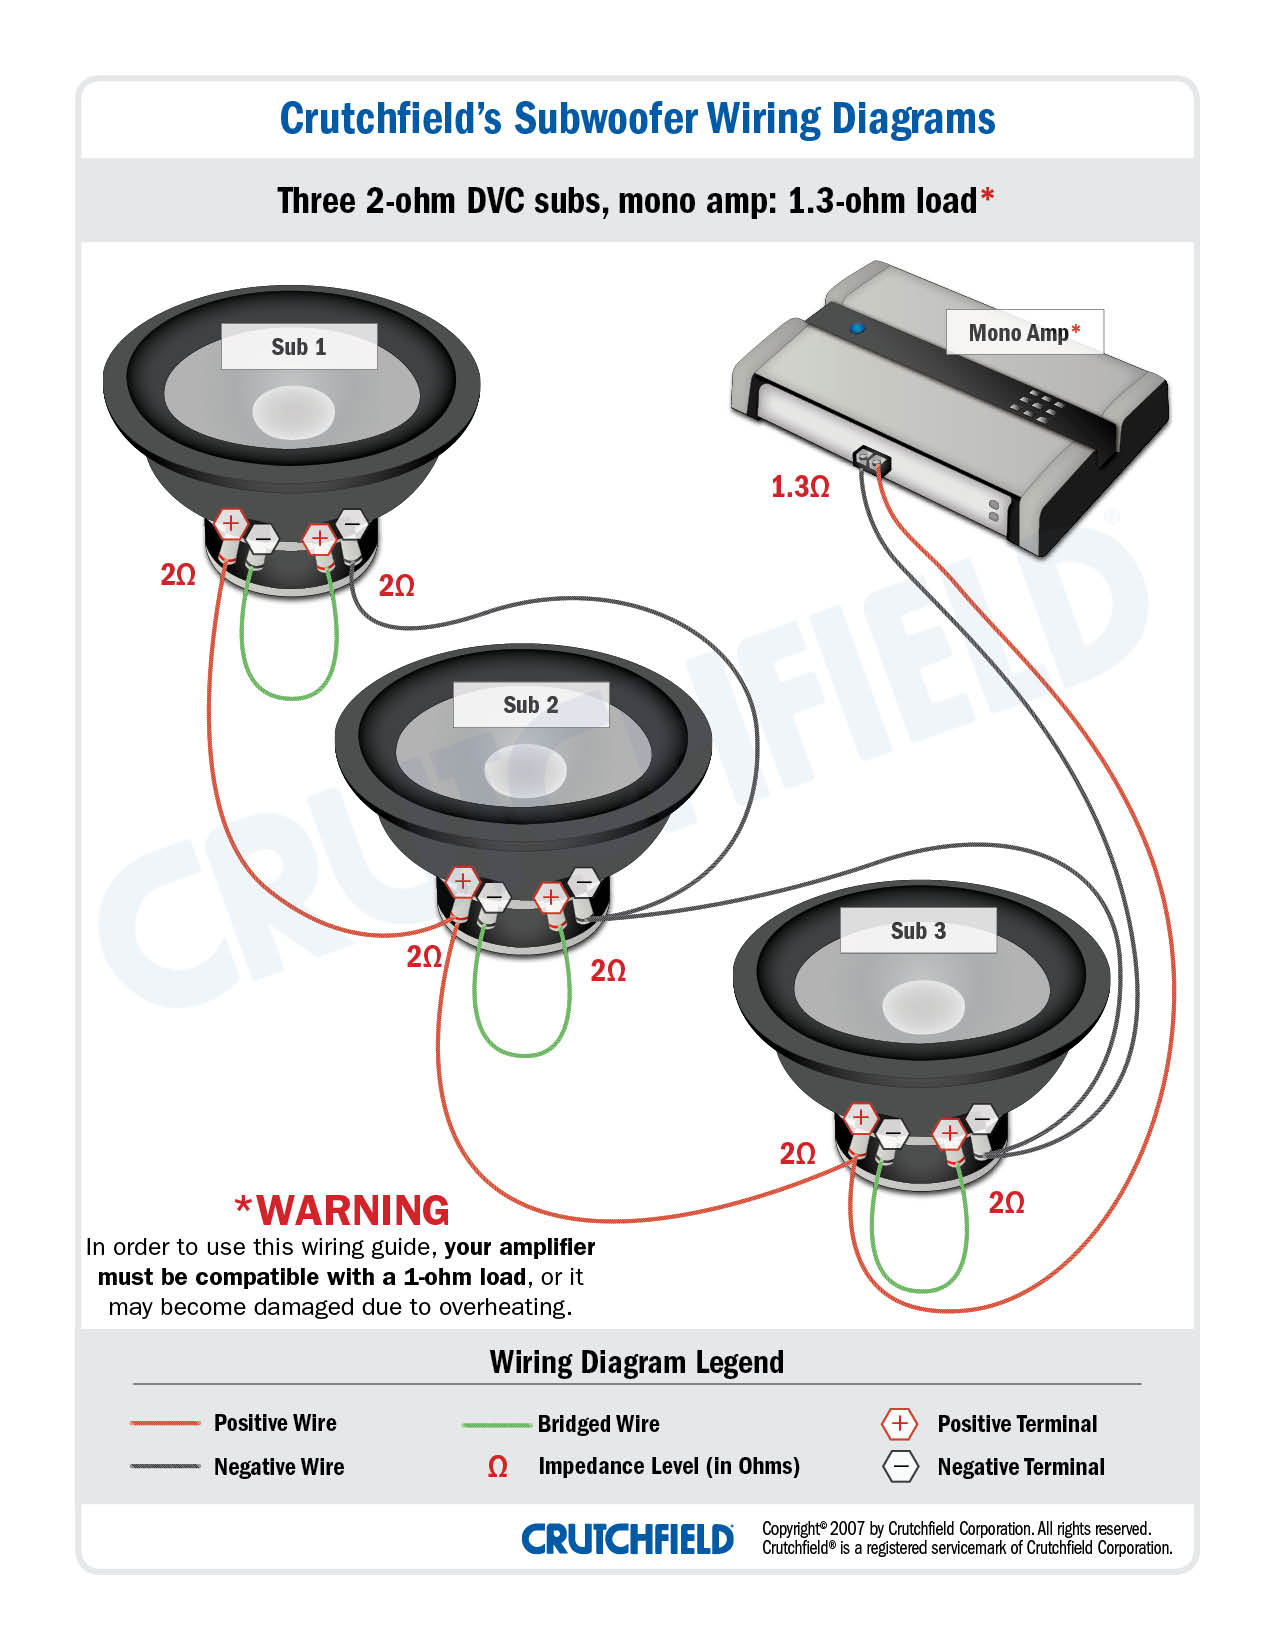 3 DVC 2 ohm mono low imp subwoofer wiring diagrams jl audio subwoofer wiring diagram at alyssarenee.co